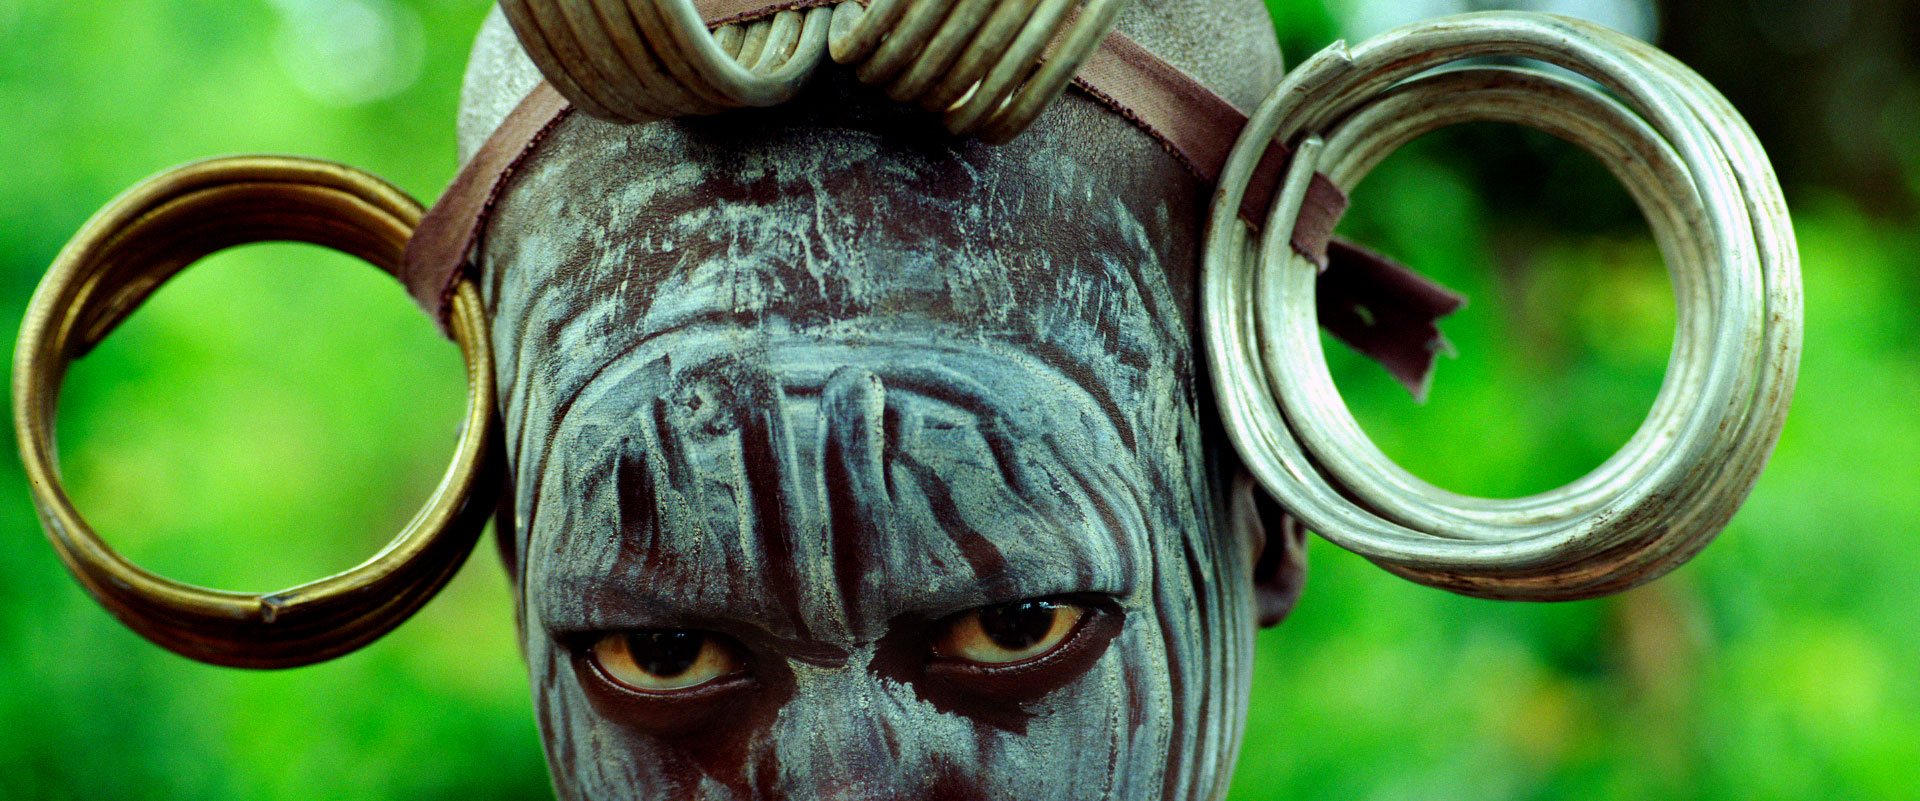 the official site for the films samsara and baraka